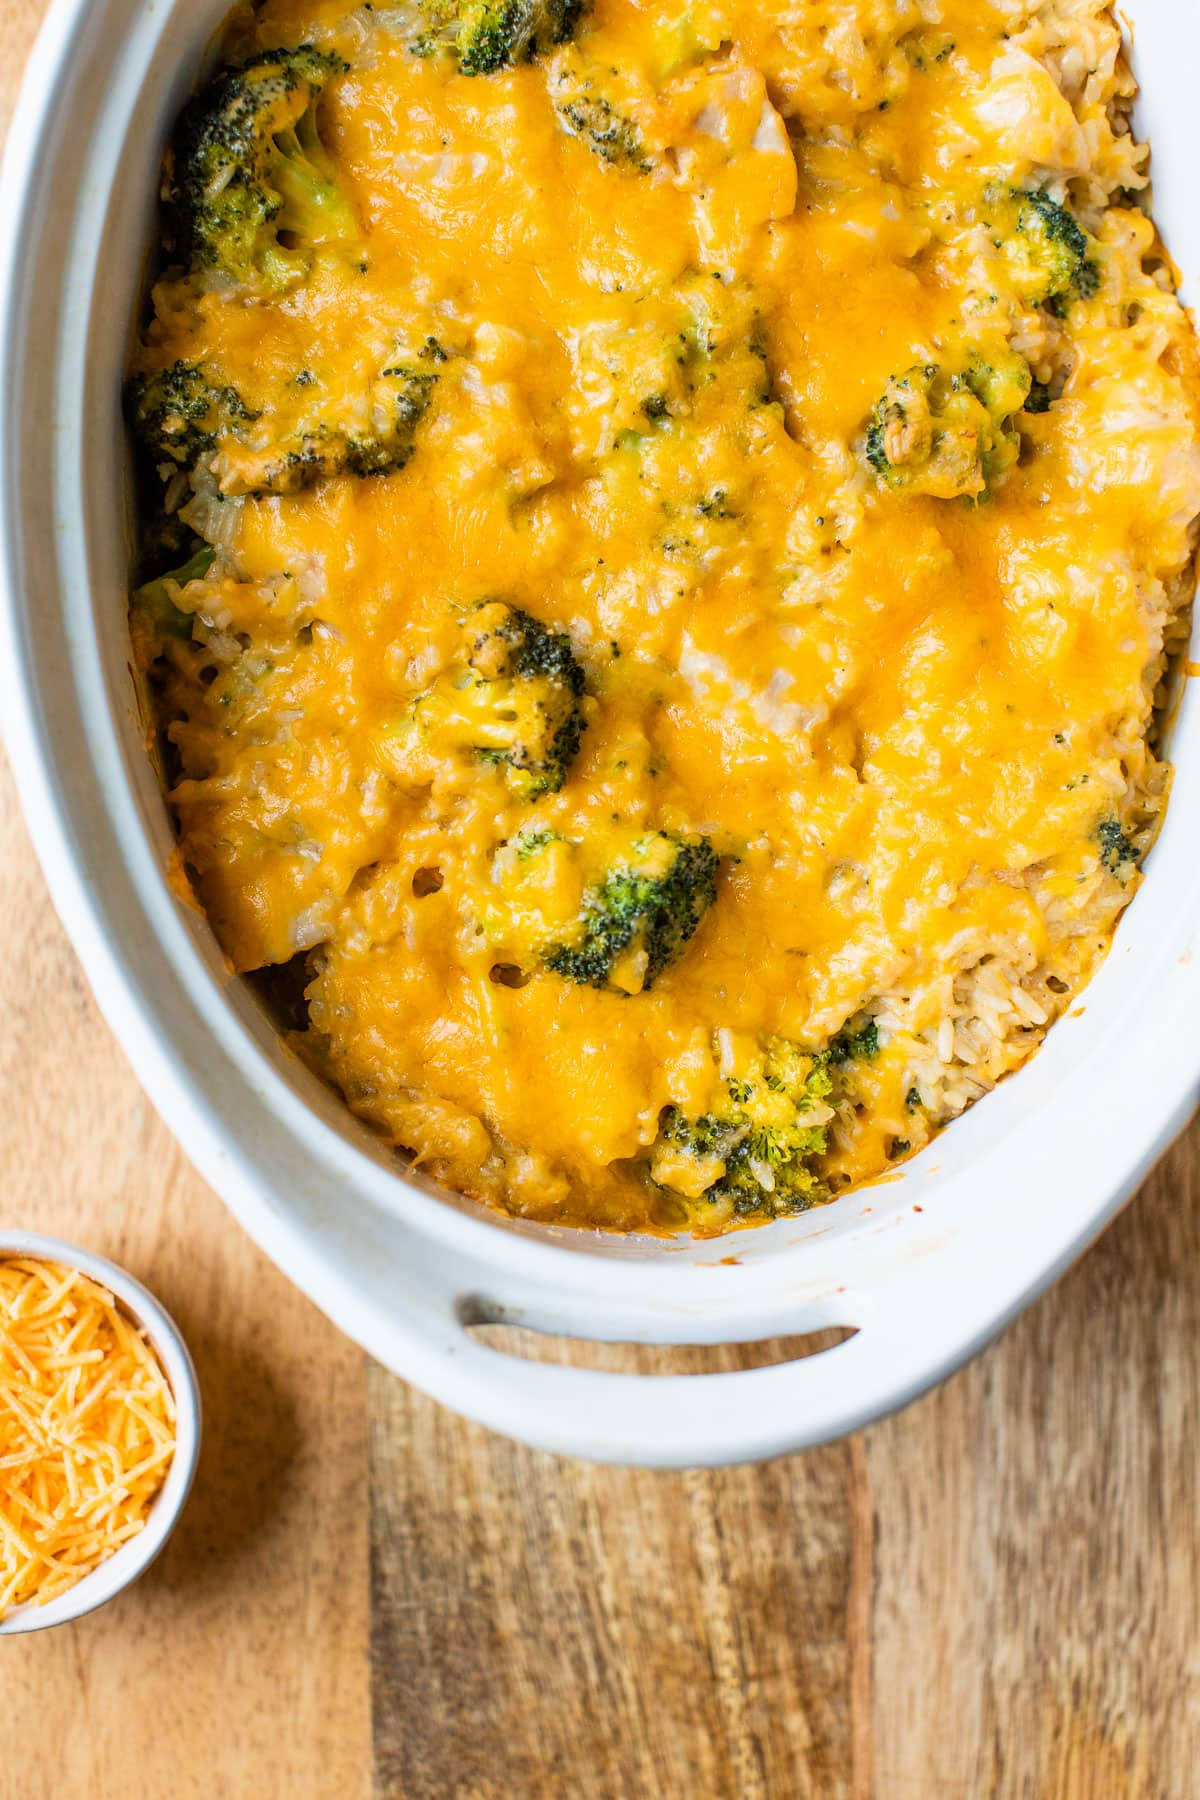 Chicken broccoli rice casserole with cheese on top